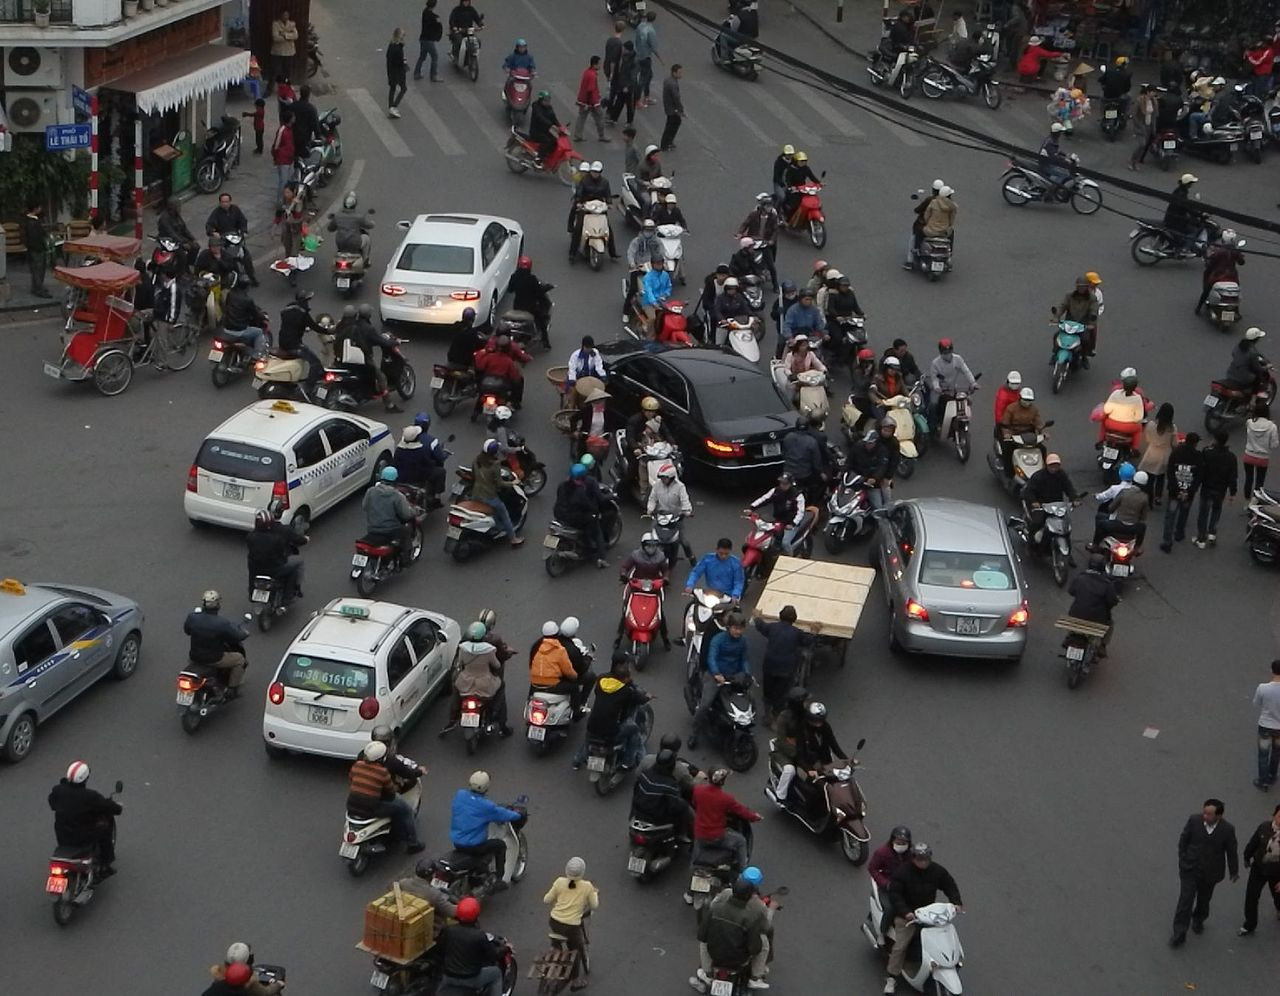 Learn How to Cross a Road in Hanoi